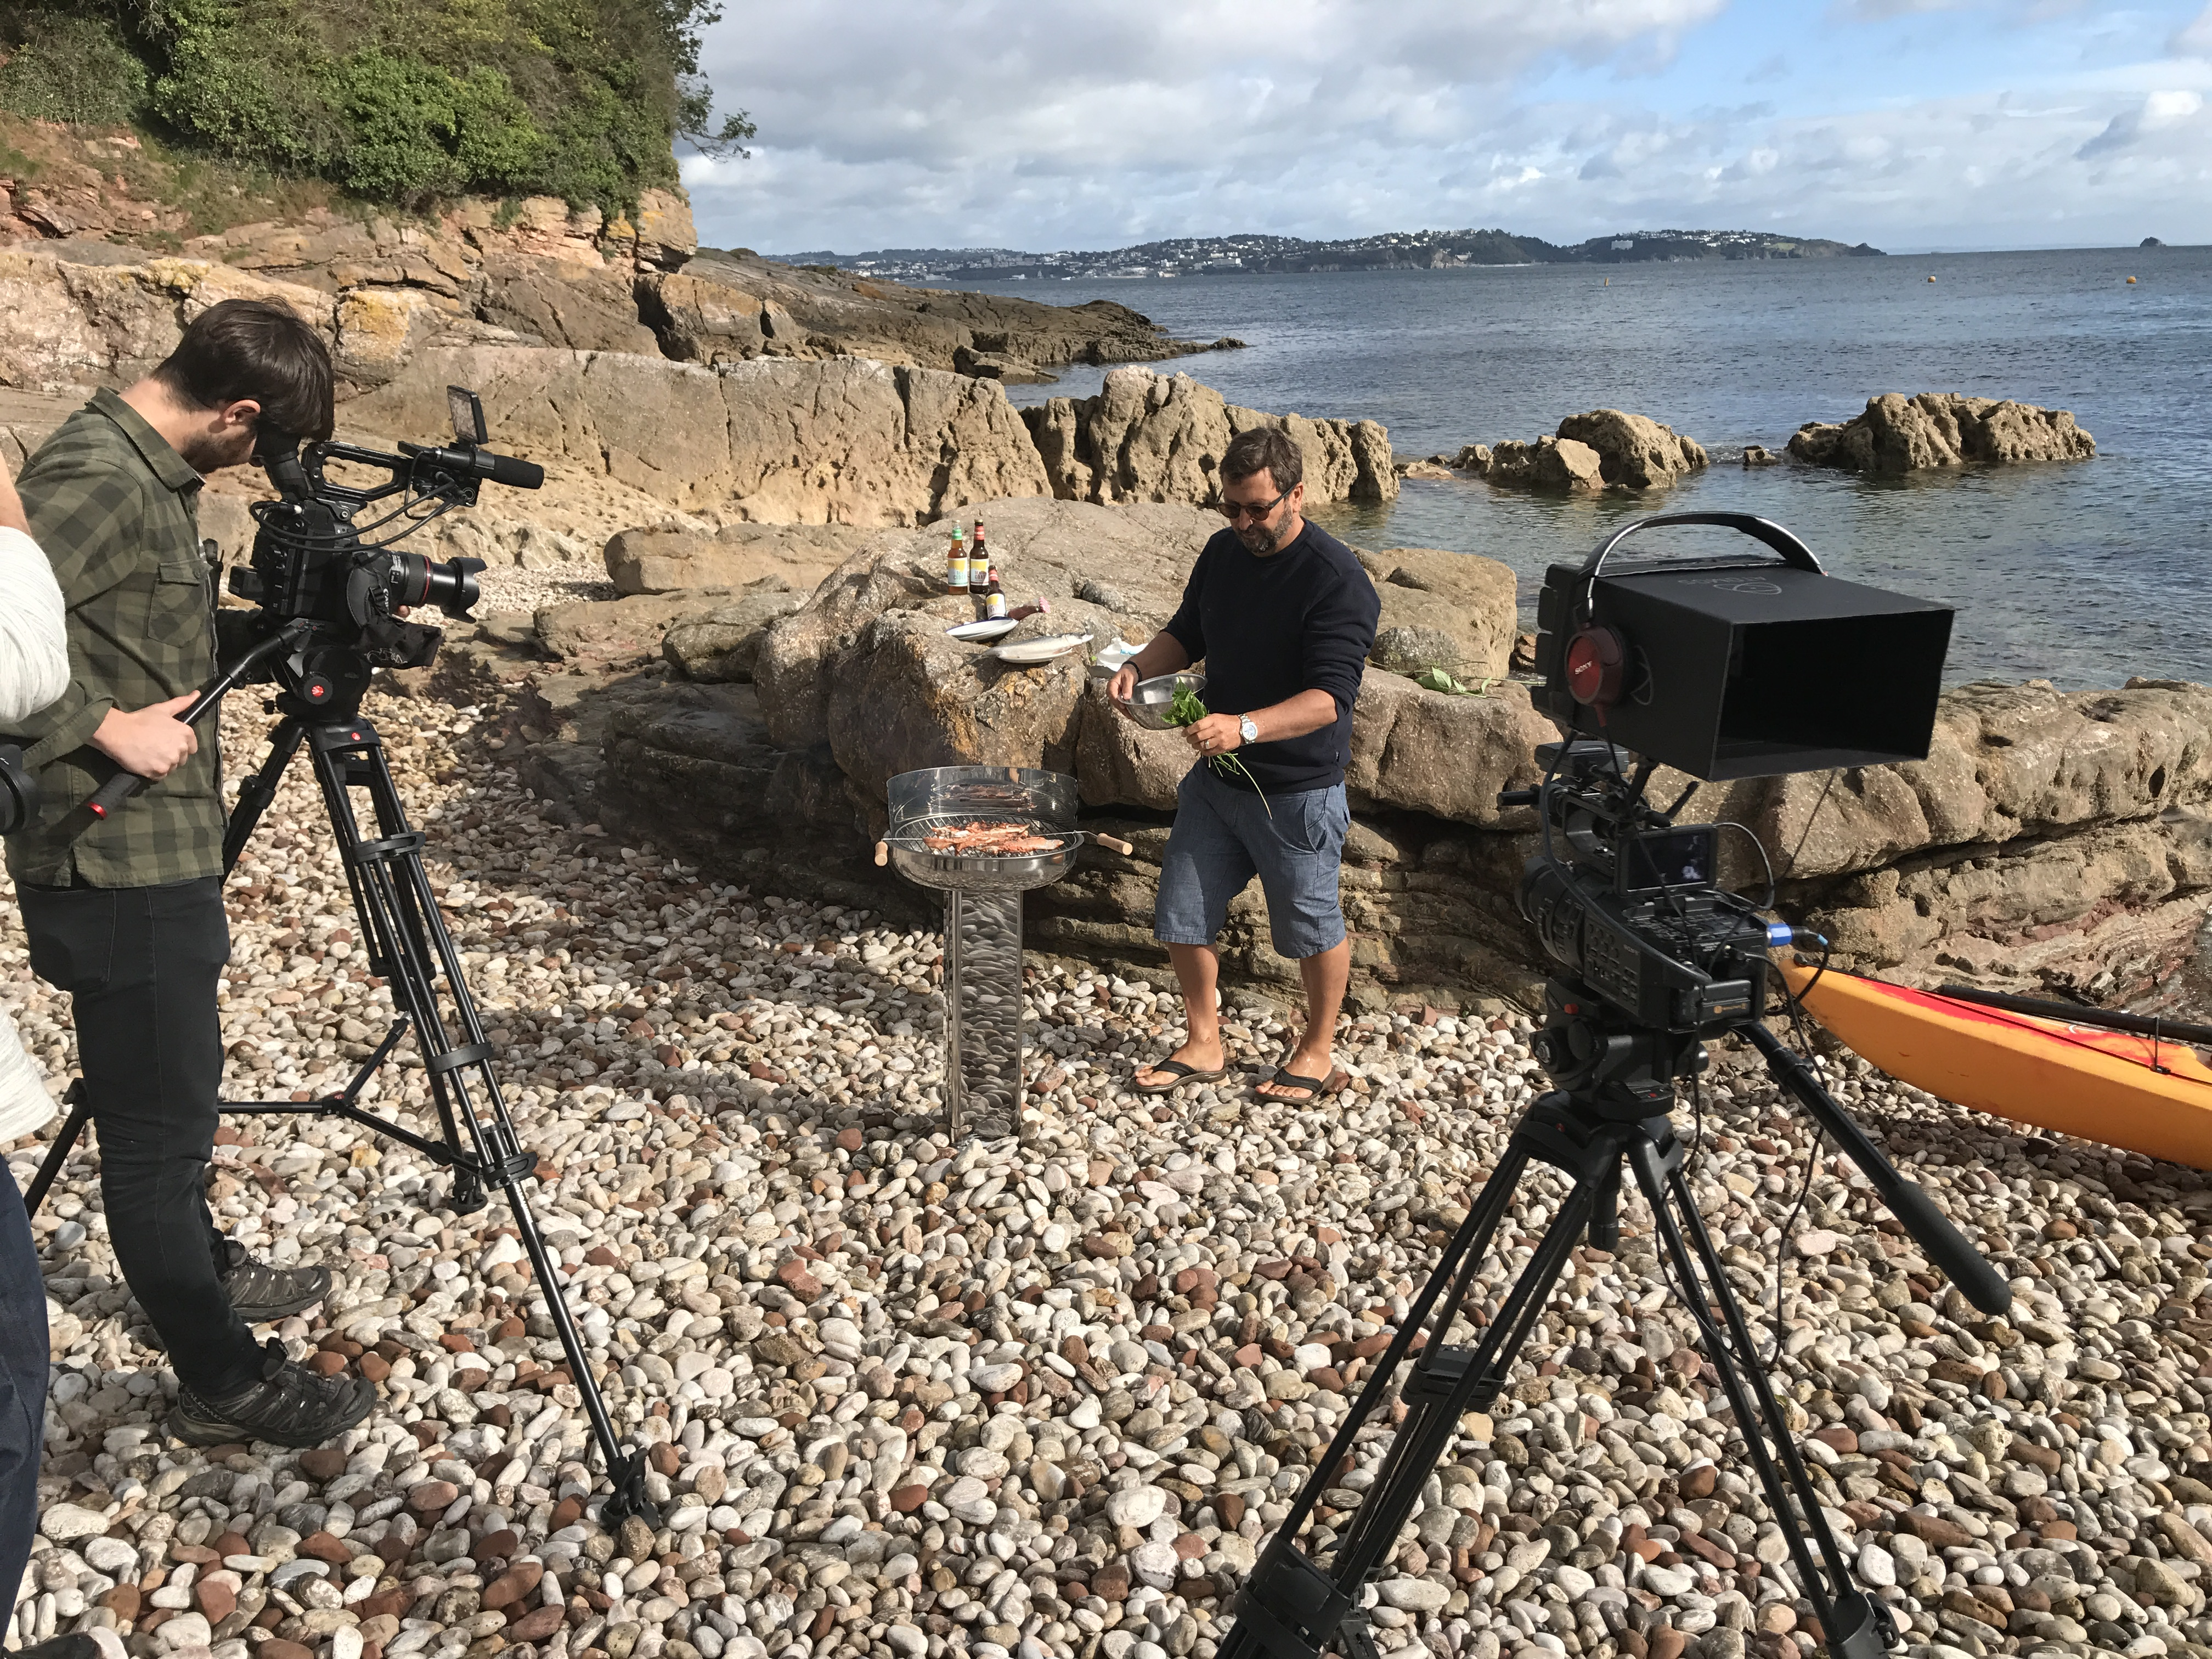 England's Seafood Coast video BBQ Seafood Ambassador Mitch Tonk. We were filming on Elberry Cove filming a how to, to cooking Mackerel on a BBQ.